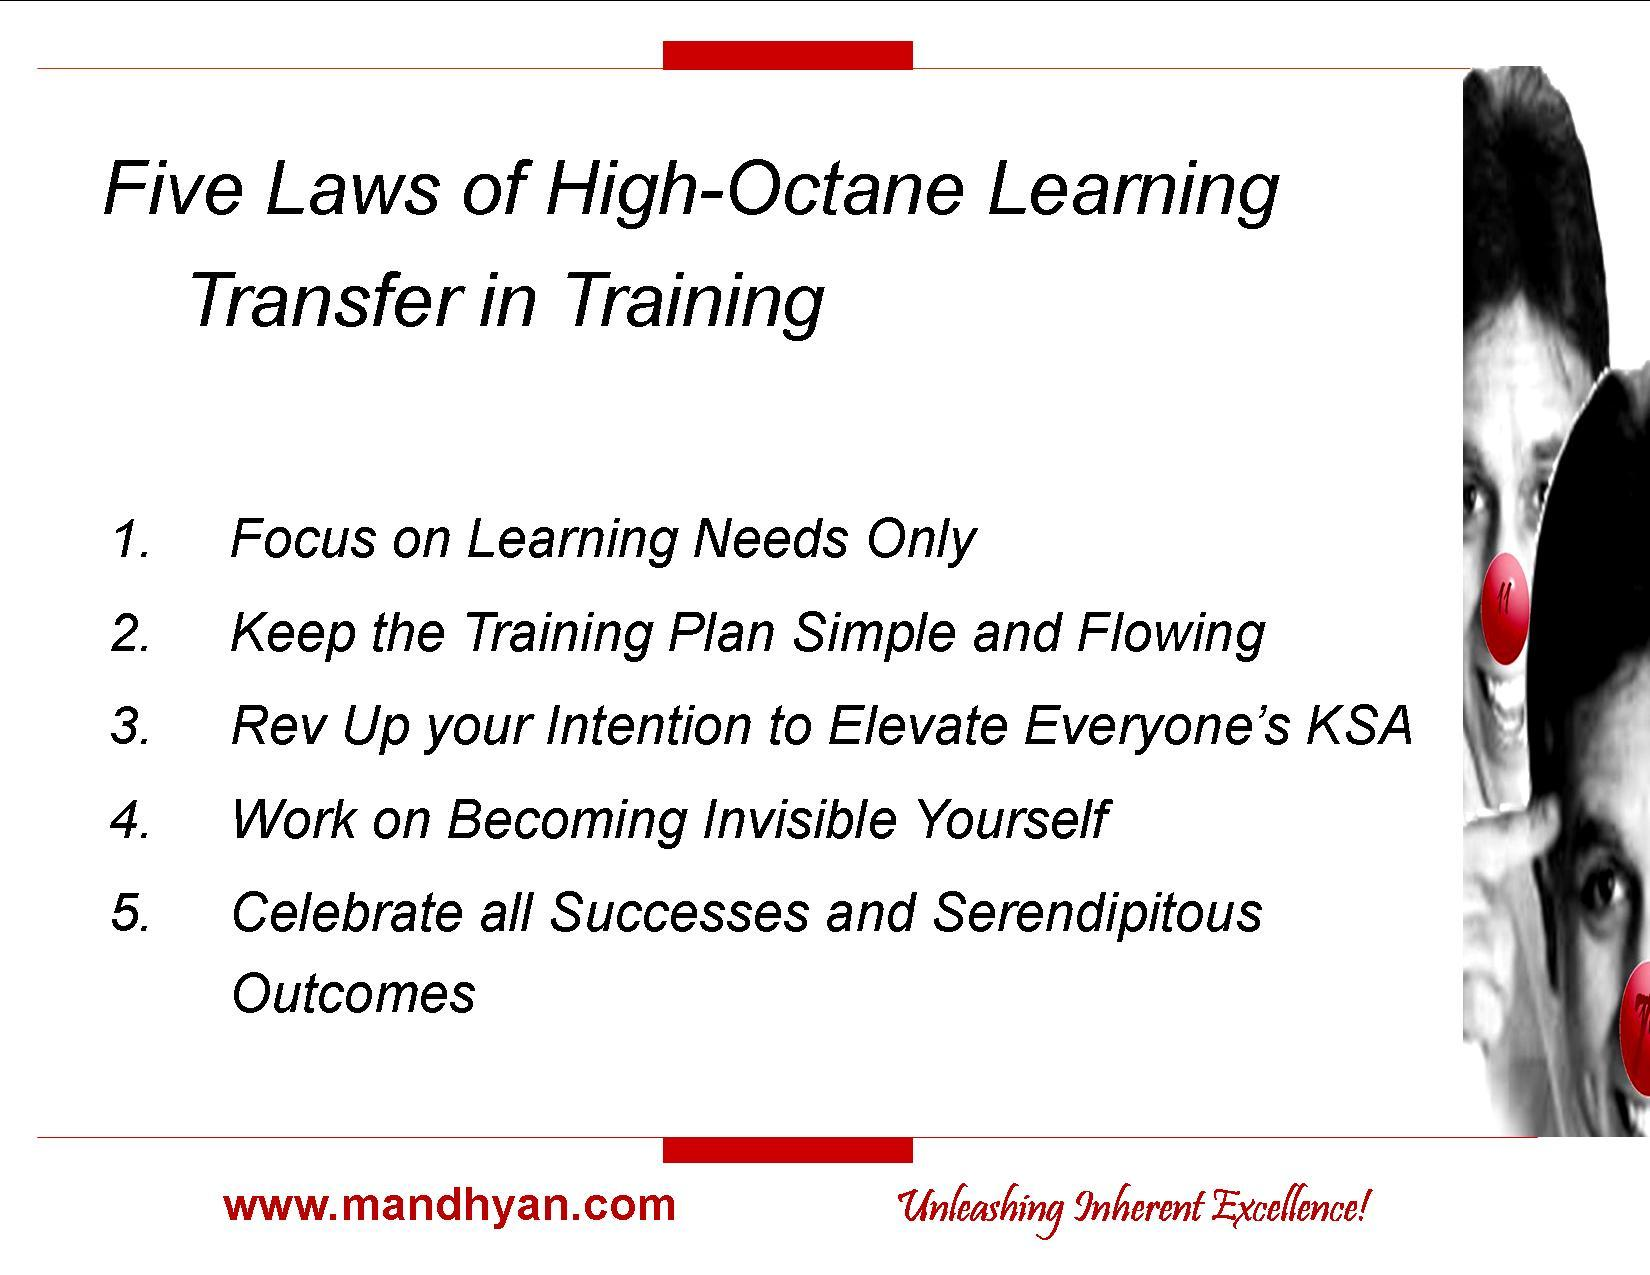 Five Laws for High-Octane Learning Transfer in Training